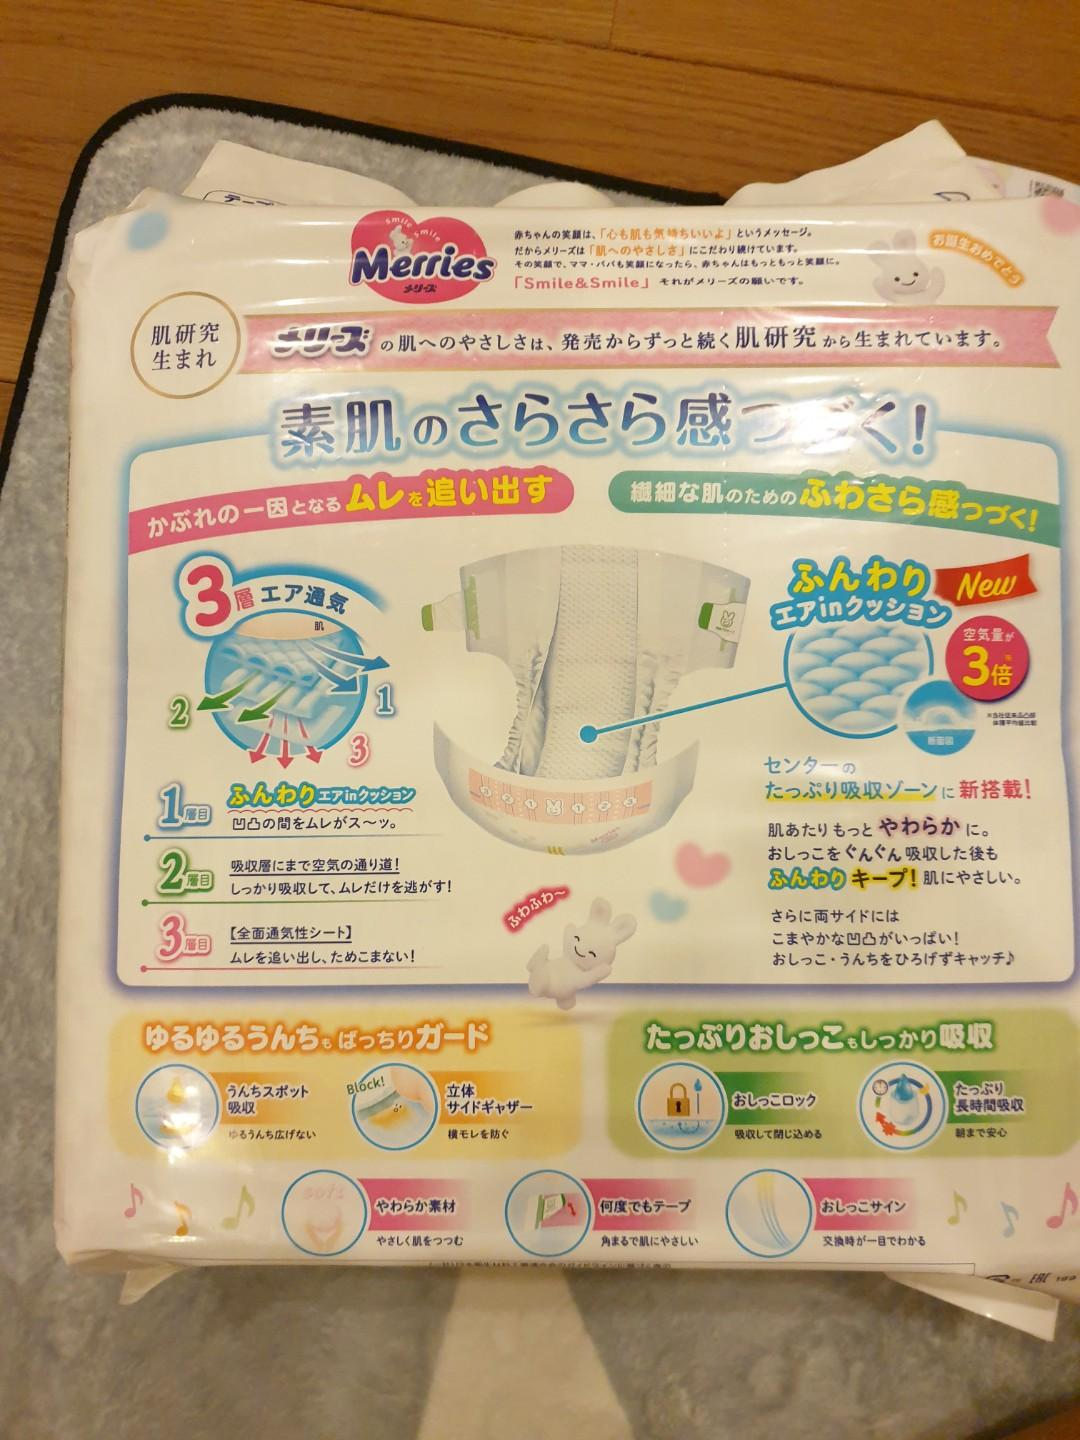 Merries diapers for new born 3 packs available